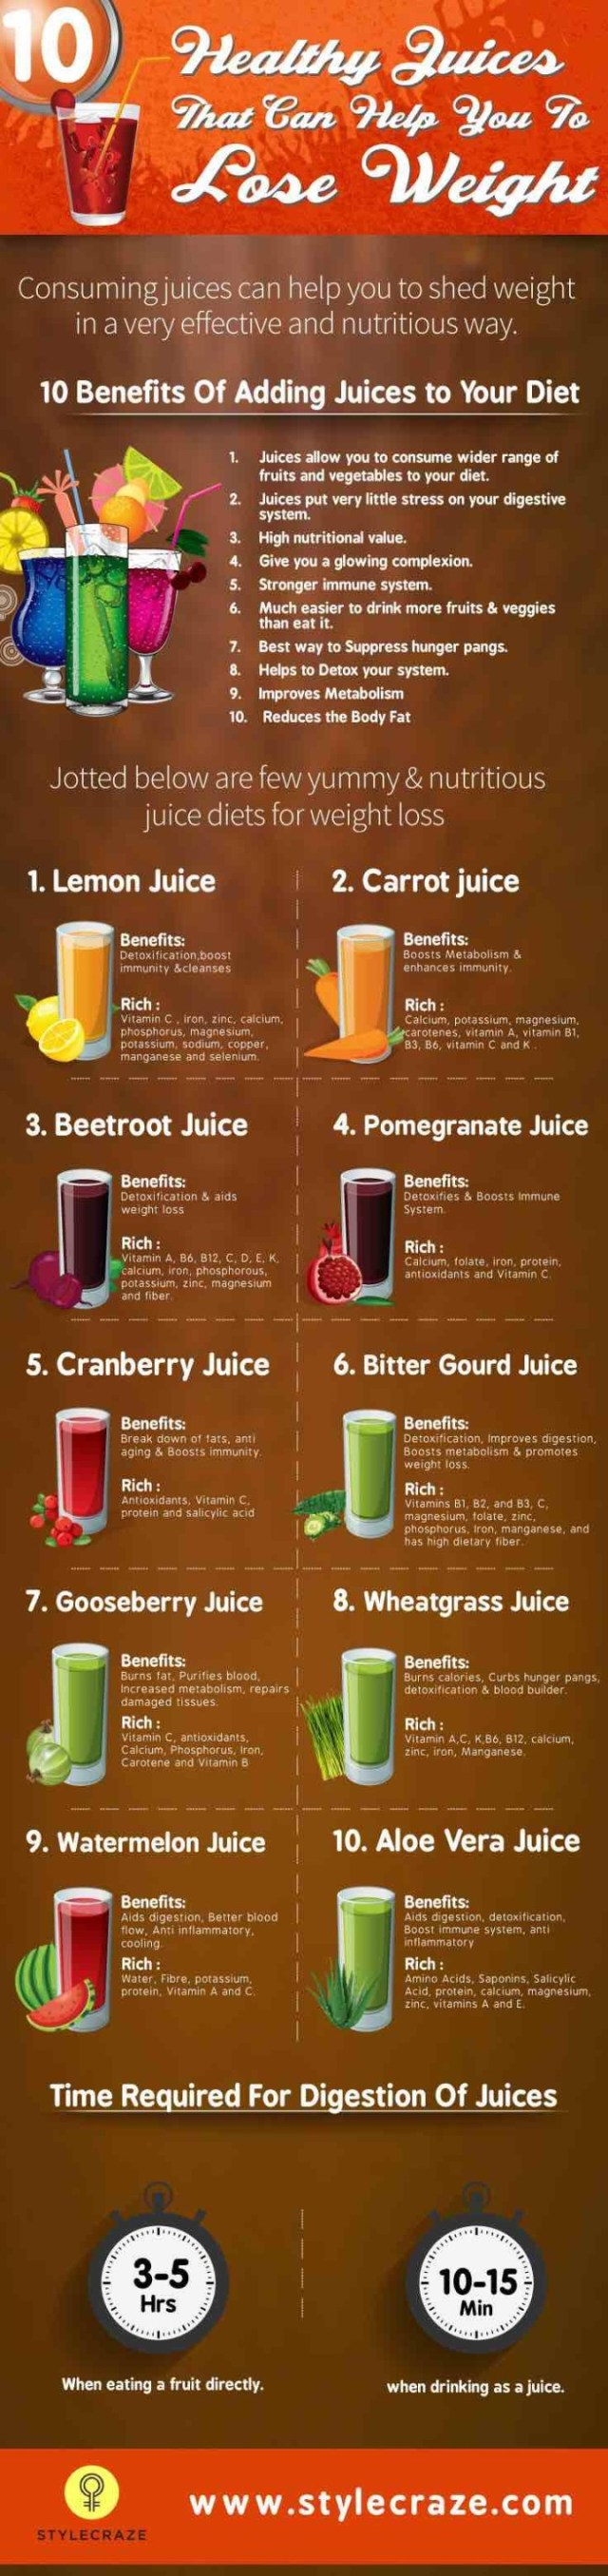 Juicing Recipes for Detoxing and Weight Loss | Never Let ...